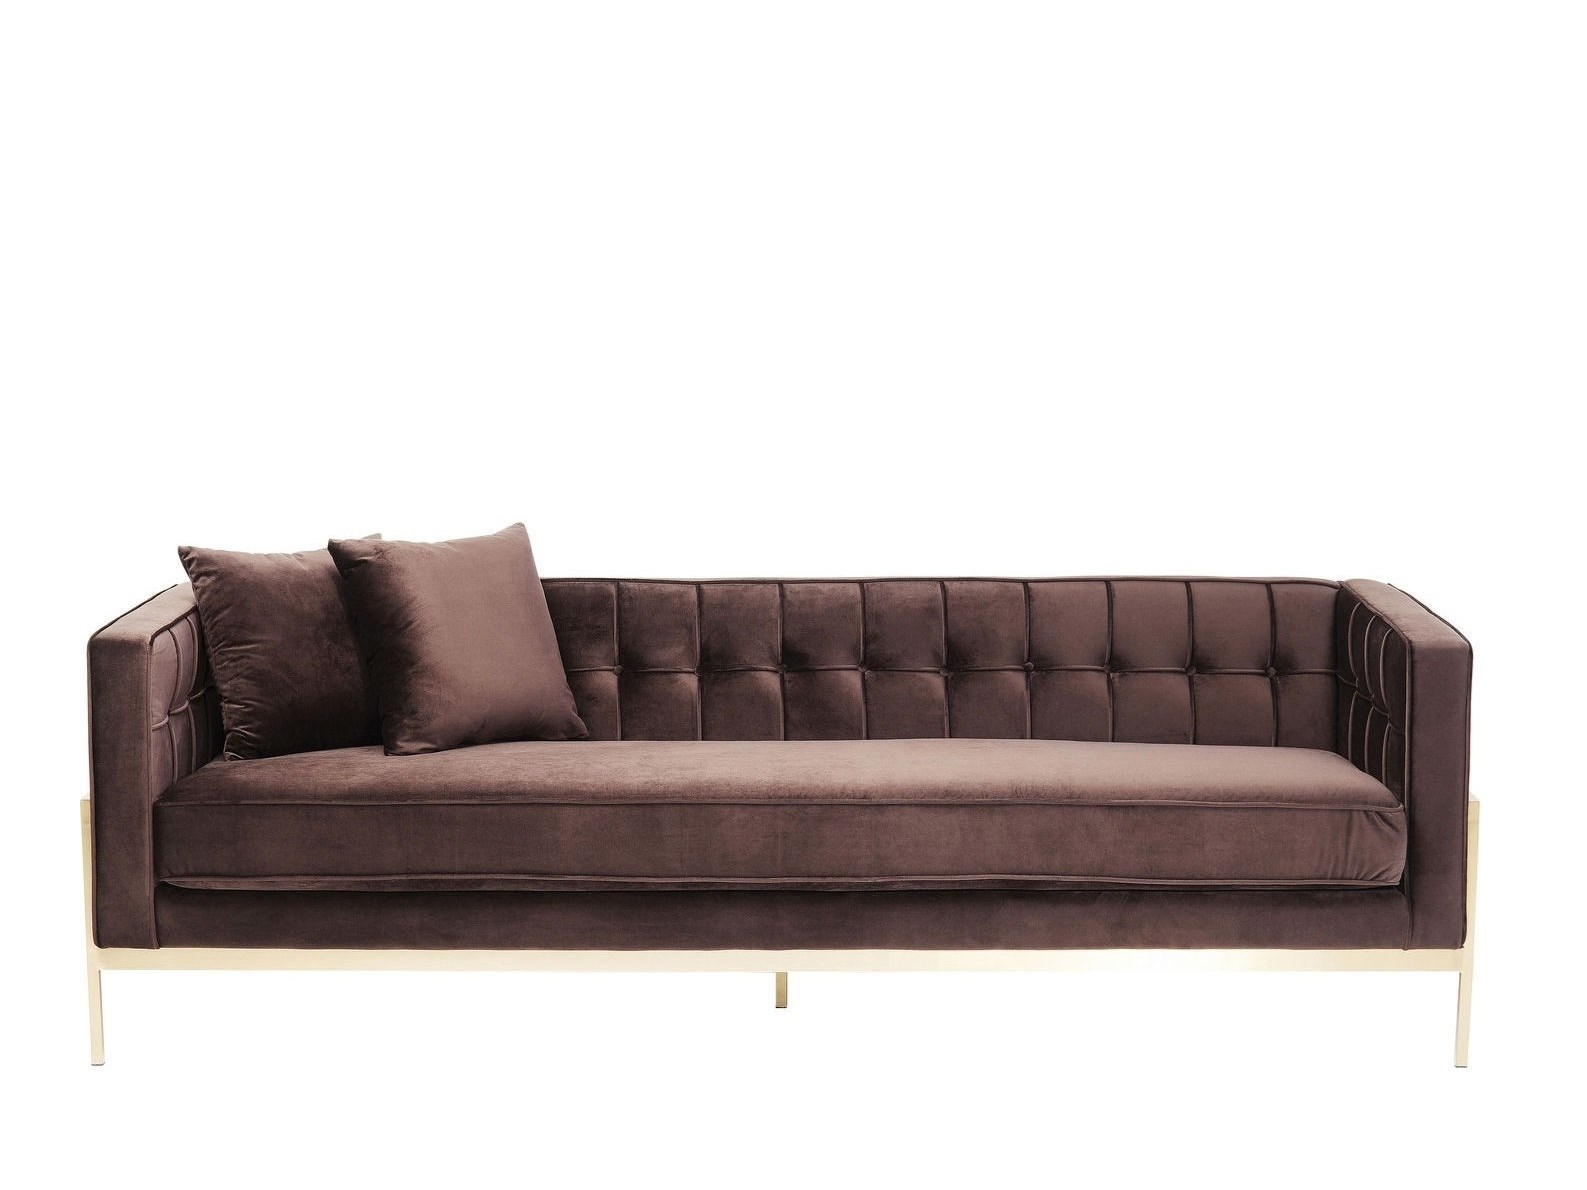 Full Size of Kare Sofa Infinity Proud Couch Gianni Bed Furniture Sales Sale Loft 3 Seater By Design Rotes Verkaufen Relaxfunktion Schlaf Innovation Berlin Landhaus Sofa Kare Sofa